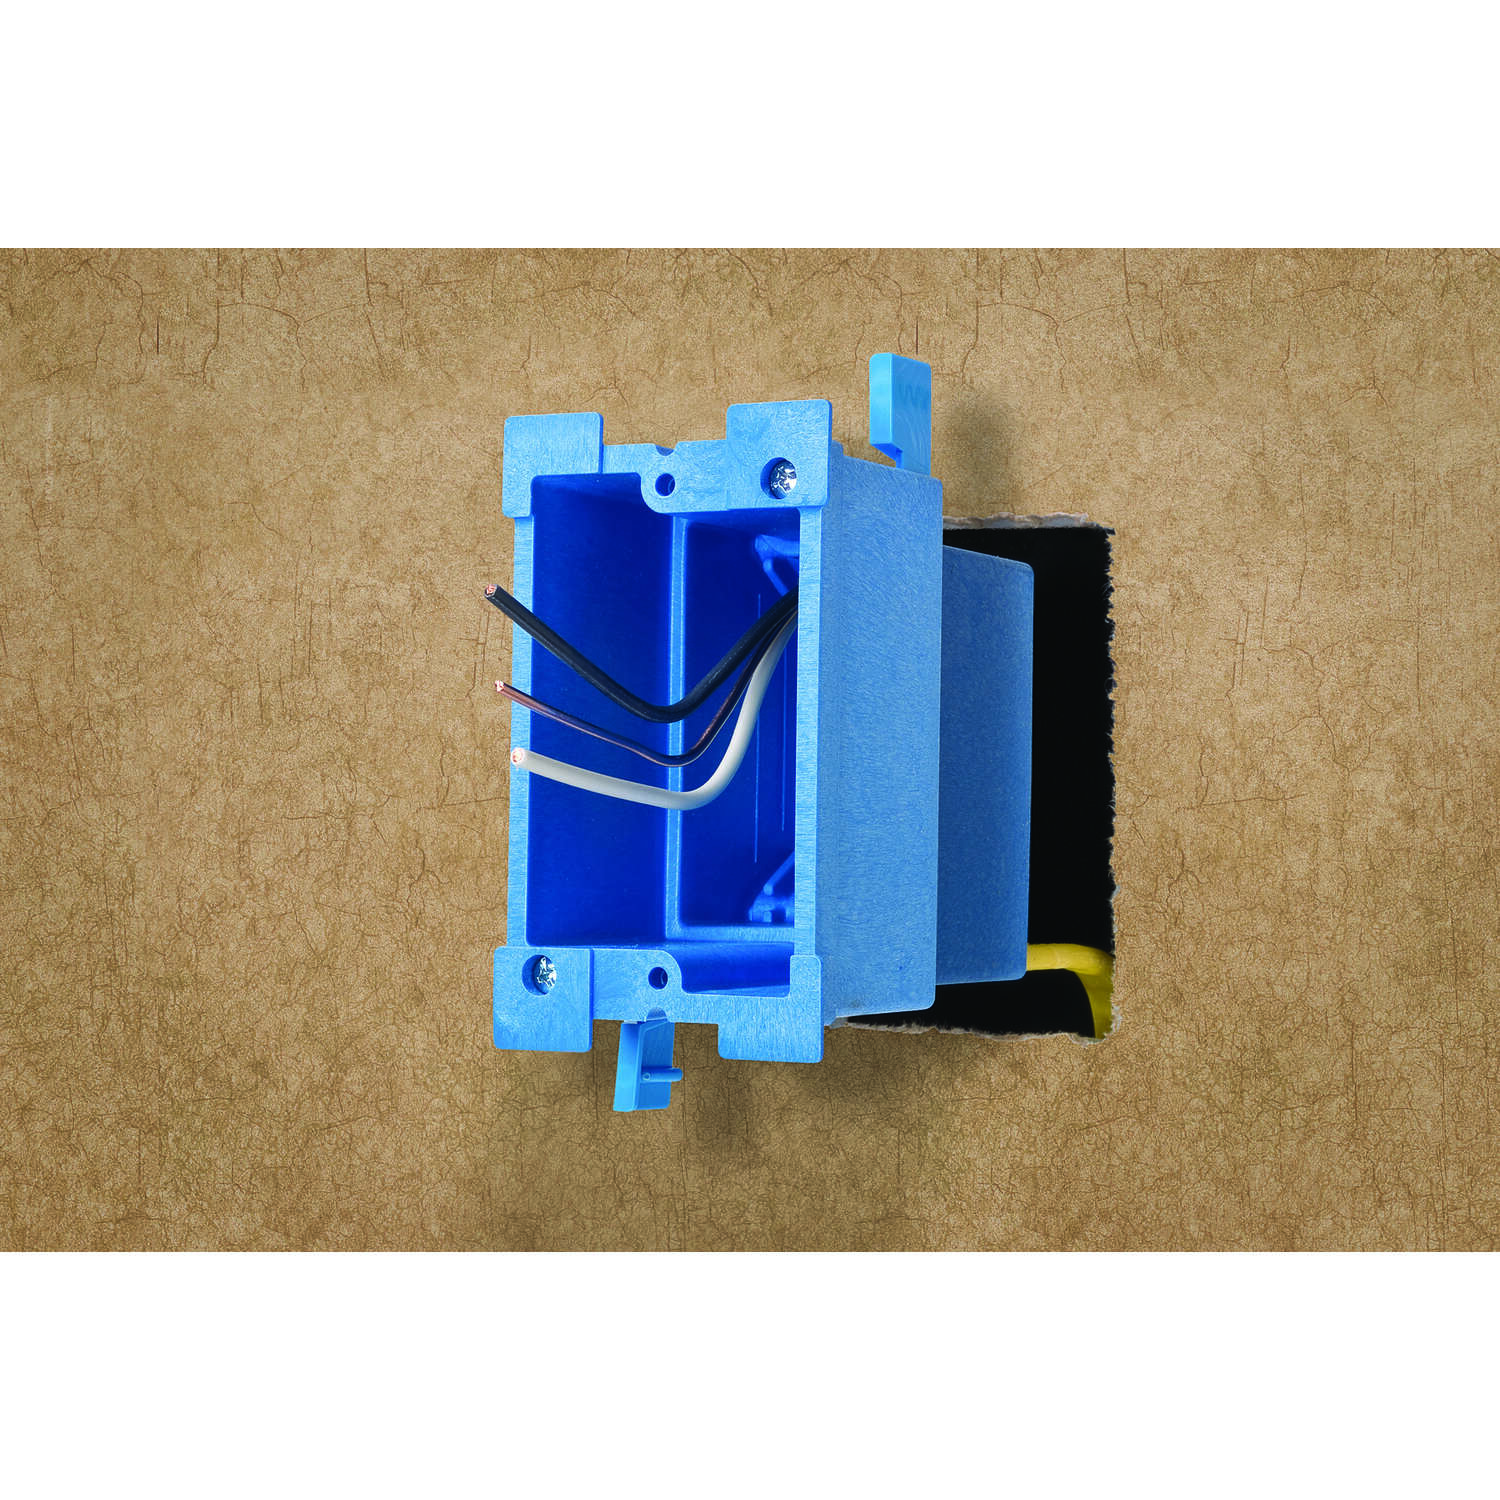 Carlon  Super Blue  7-5/8 in. Thermoplastic  1 gang 1 Gang  Outlet Box  Blue  Rectangle